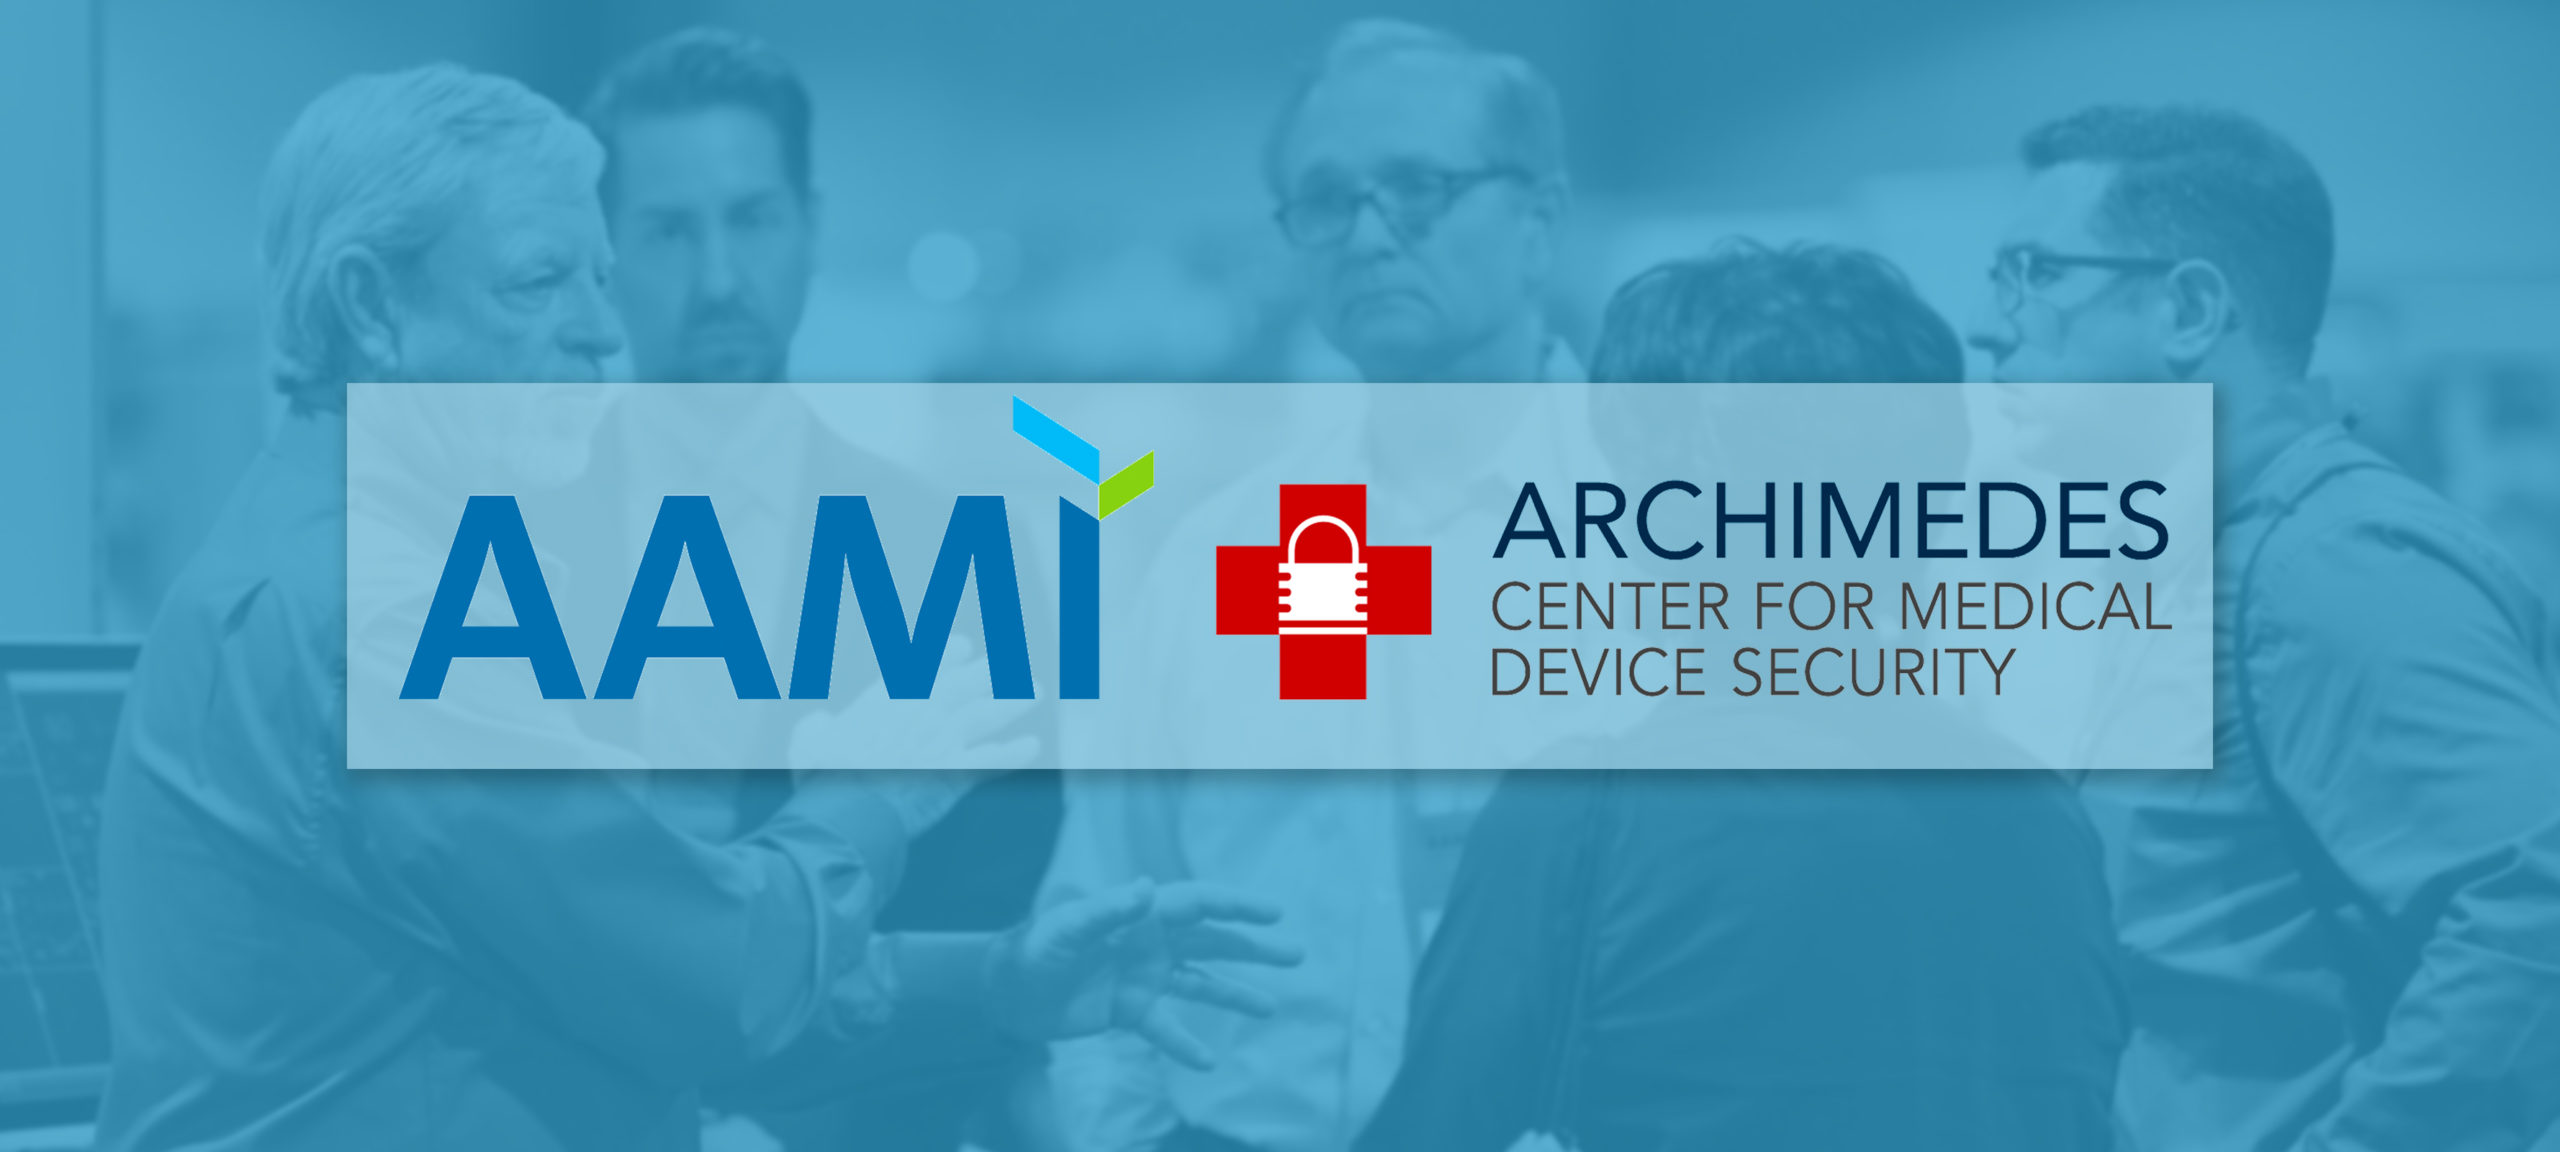 AAMI and Archimedes logos